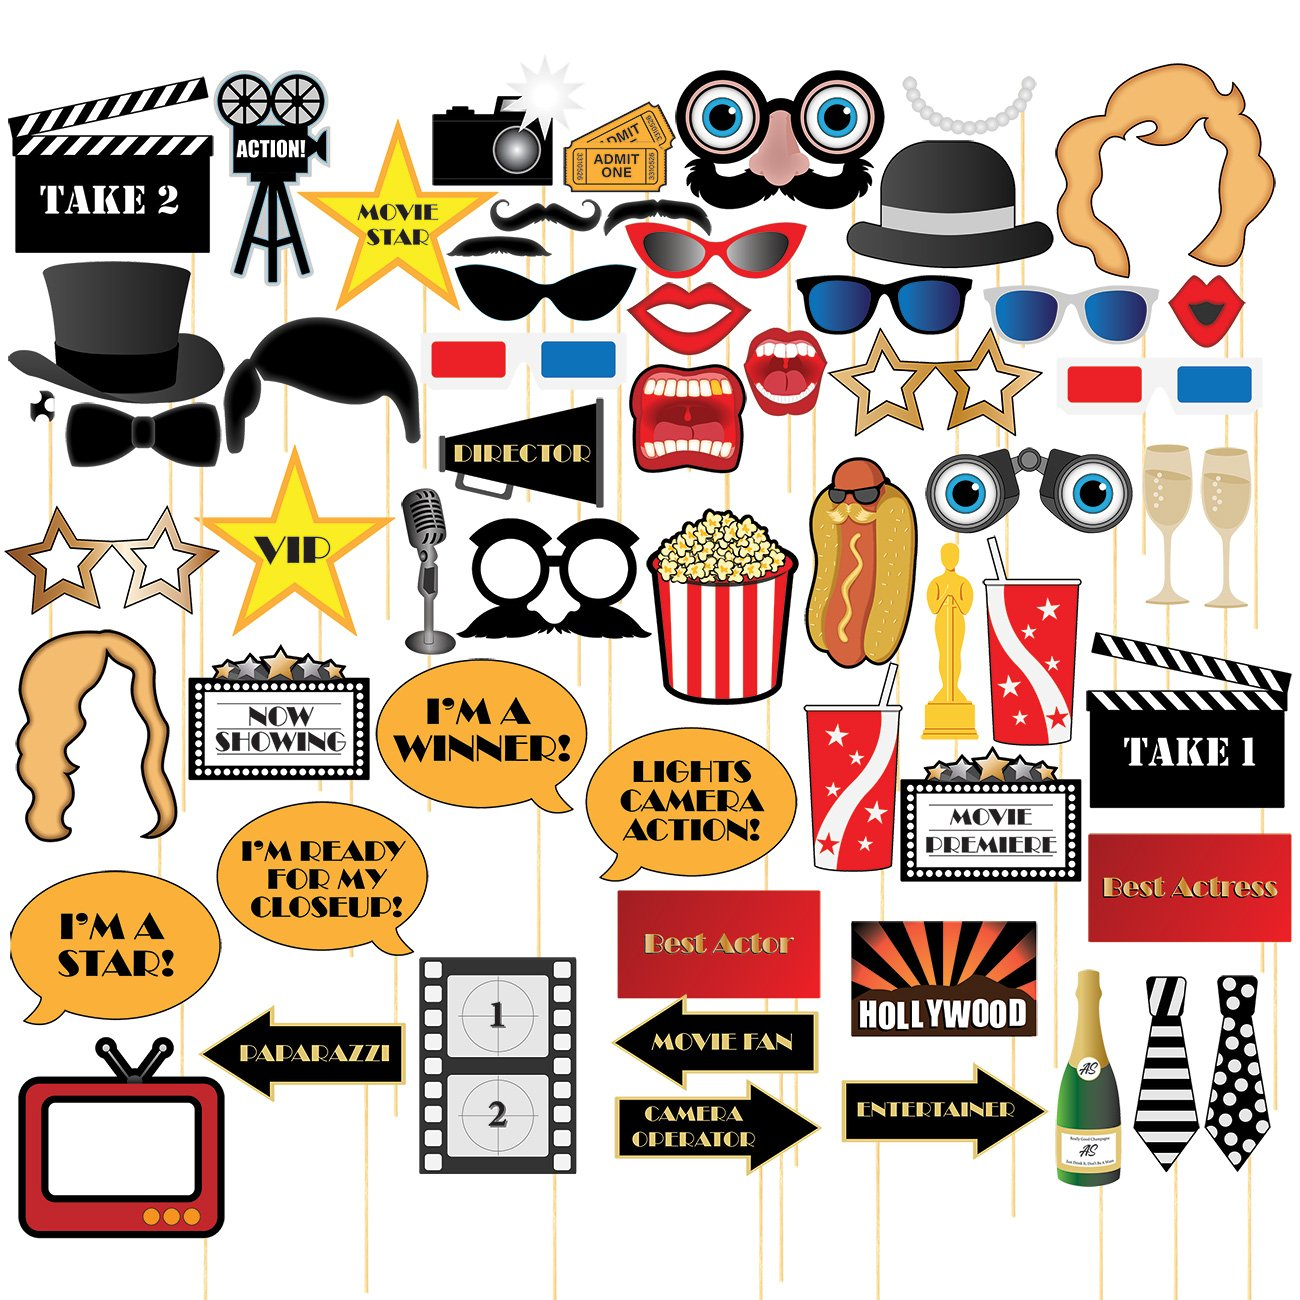 Movie Night Photo-Booth Props – 60-Pack Hollywood Party Selfie Photo Props Accessories, Birthday Party Supplies on Bamboo Sticks, Assorted Designs